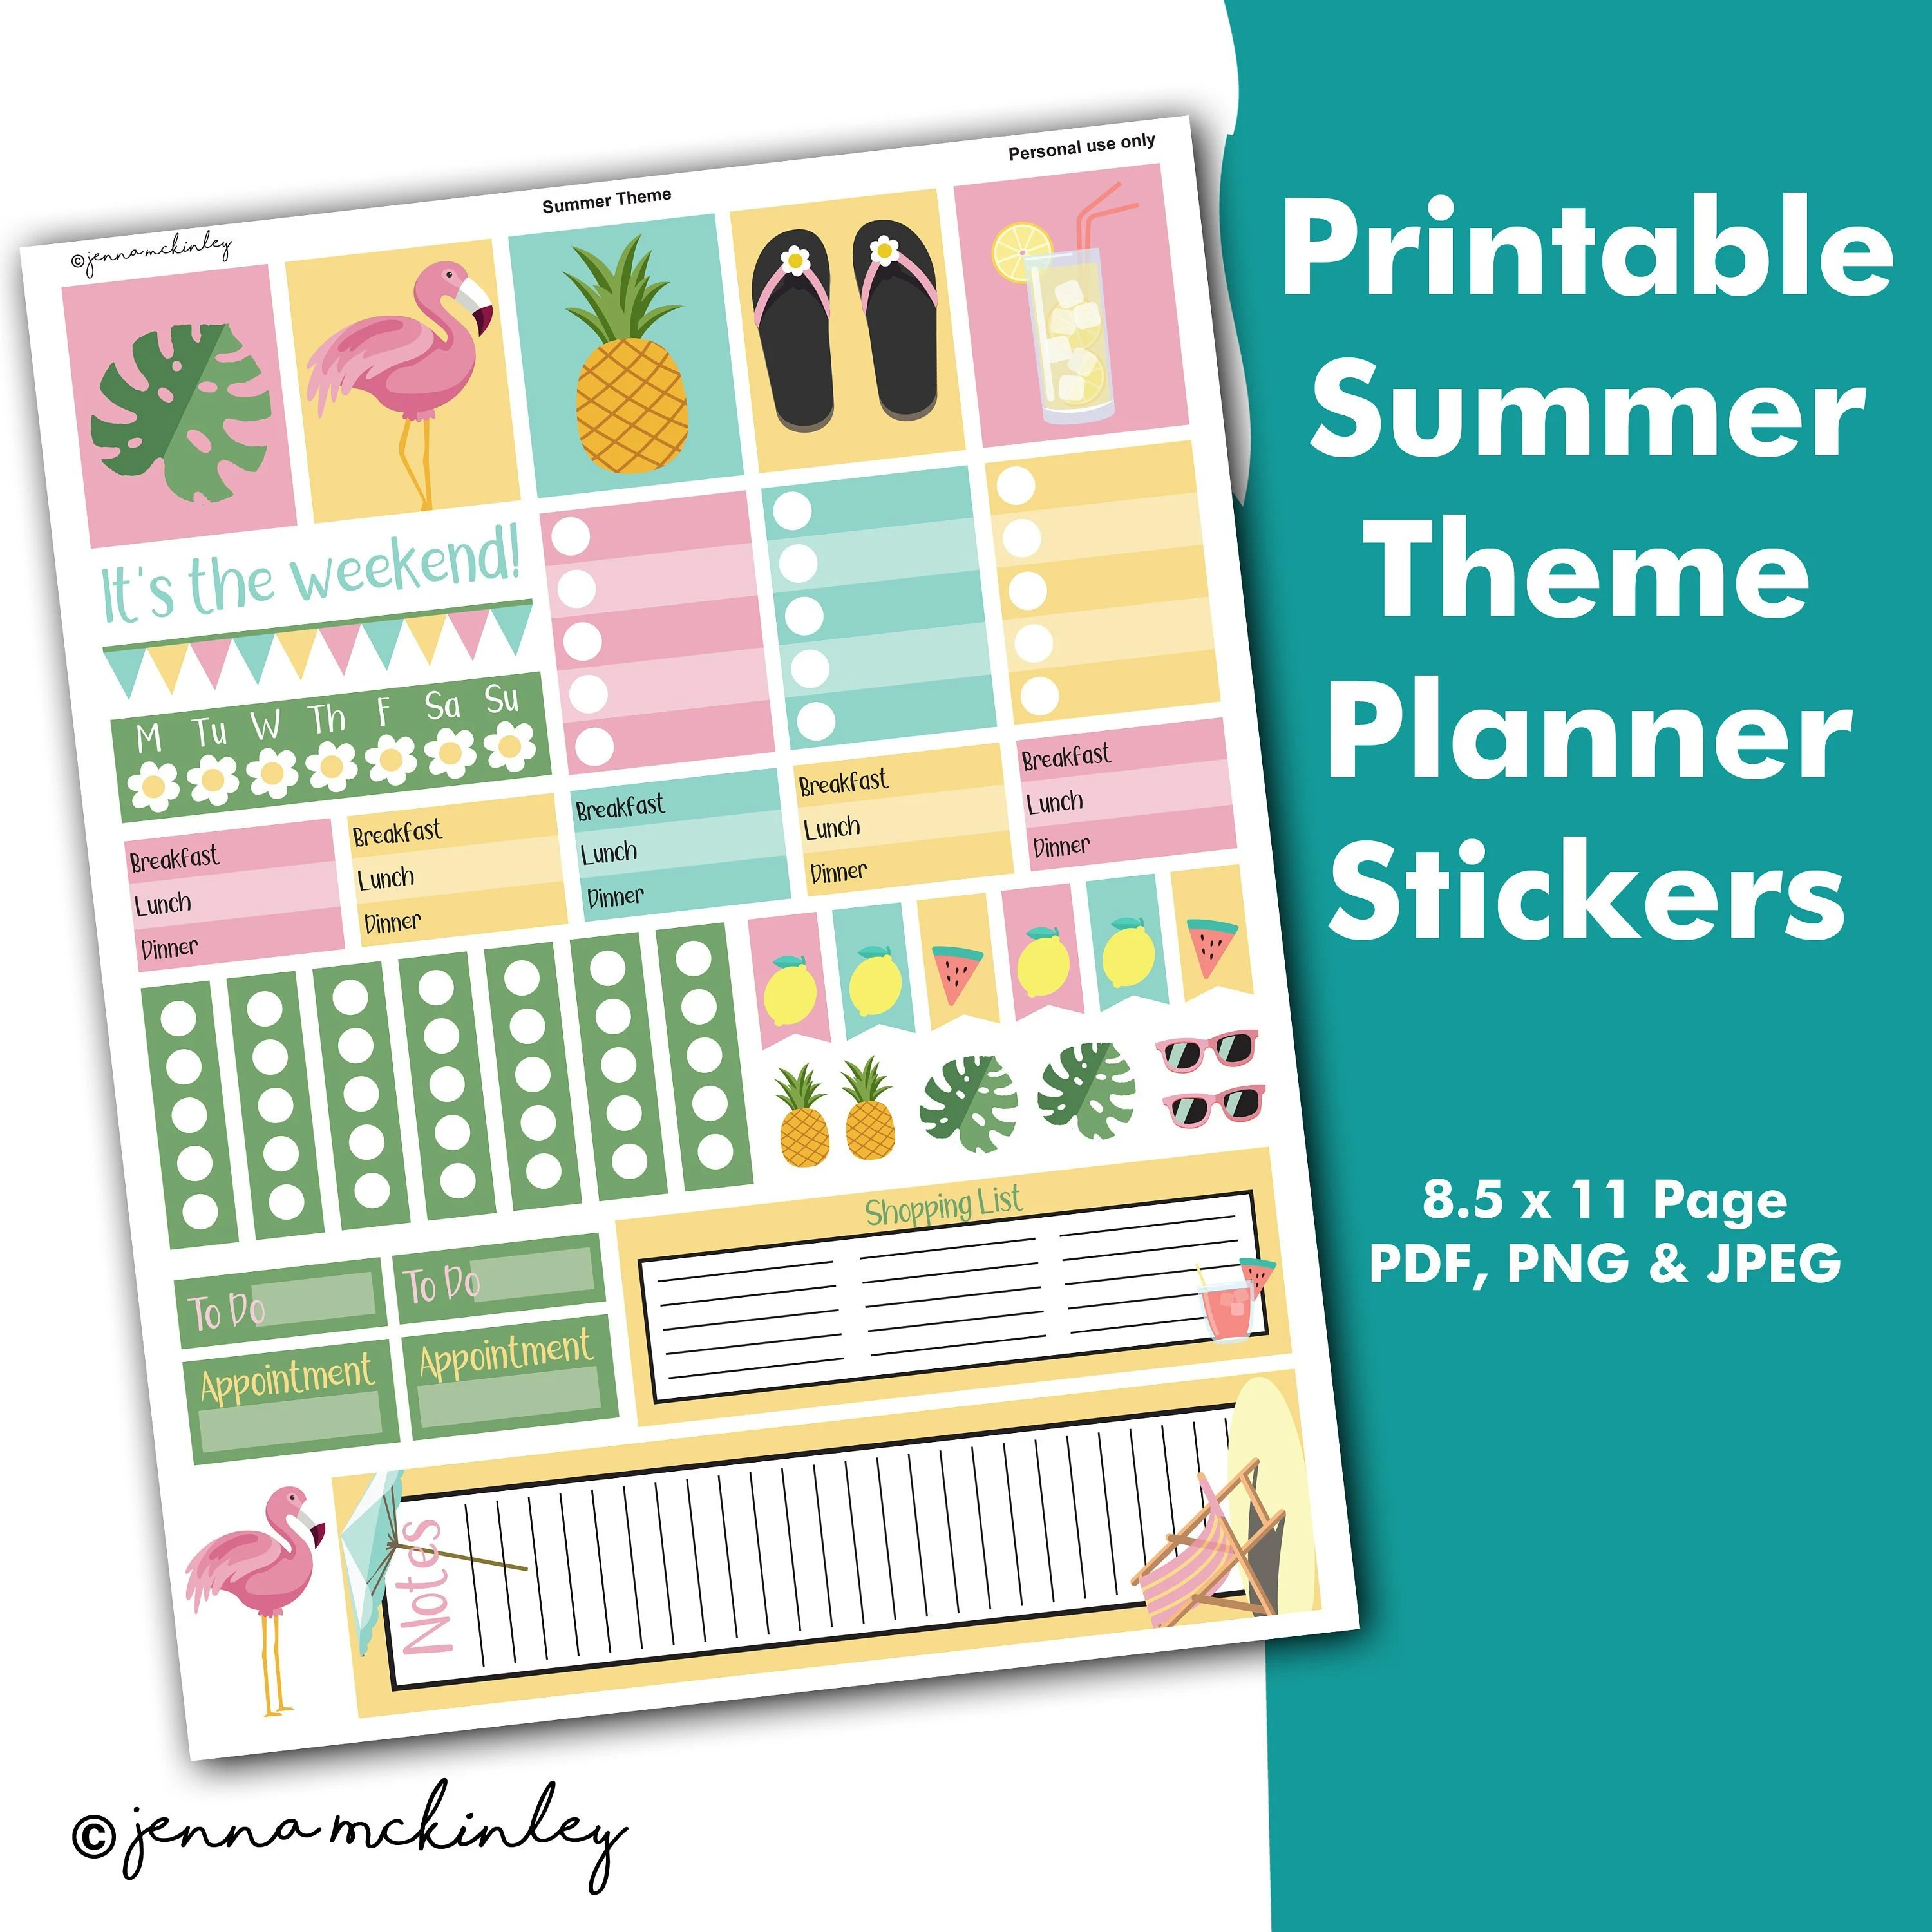 Printable Summer Planner Stickers Weekly Theme Cute Organization